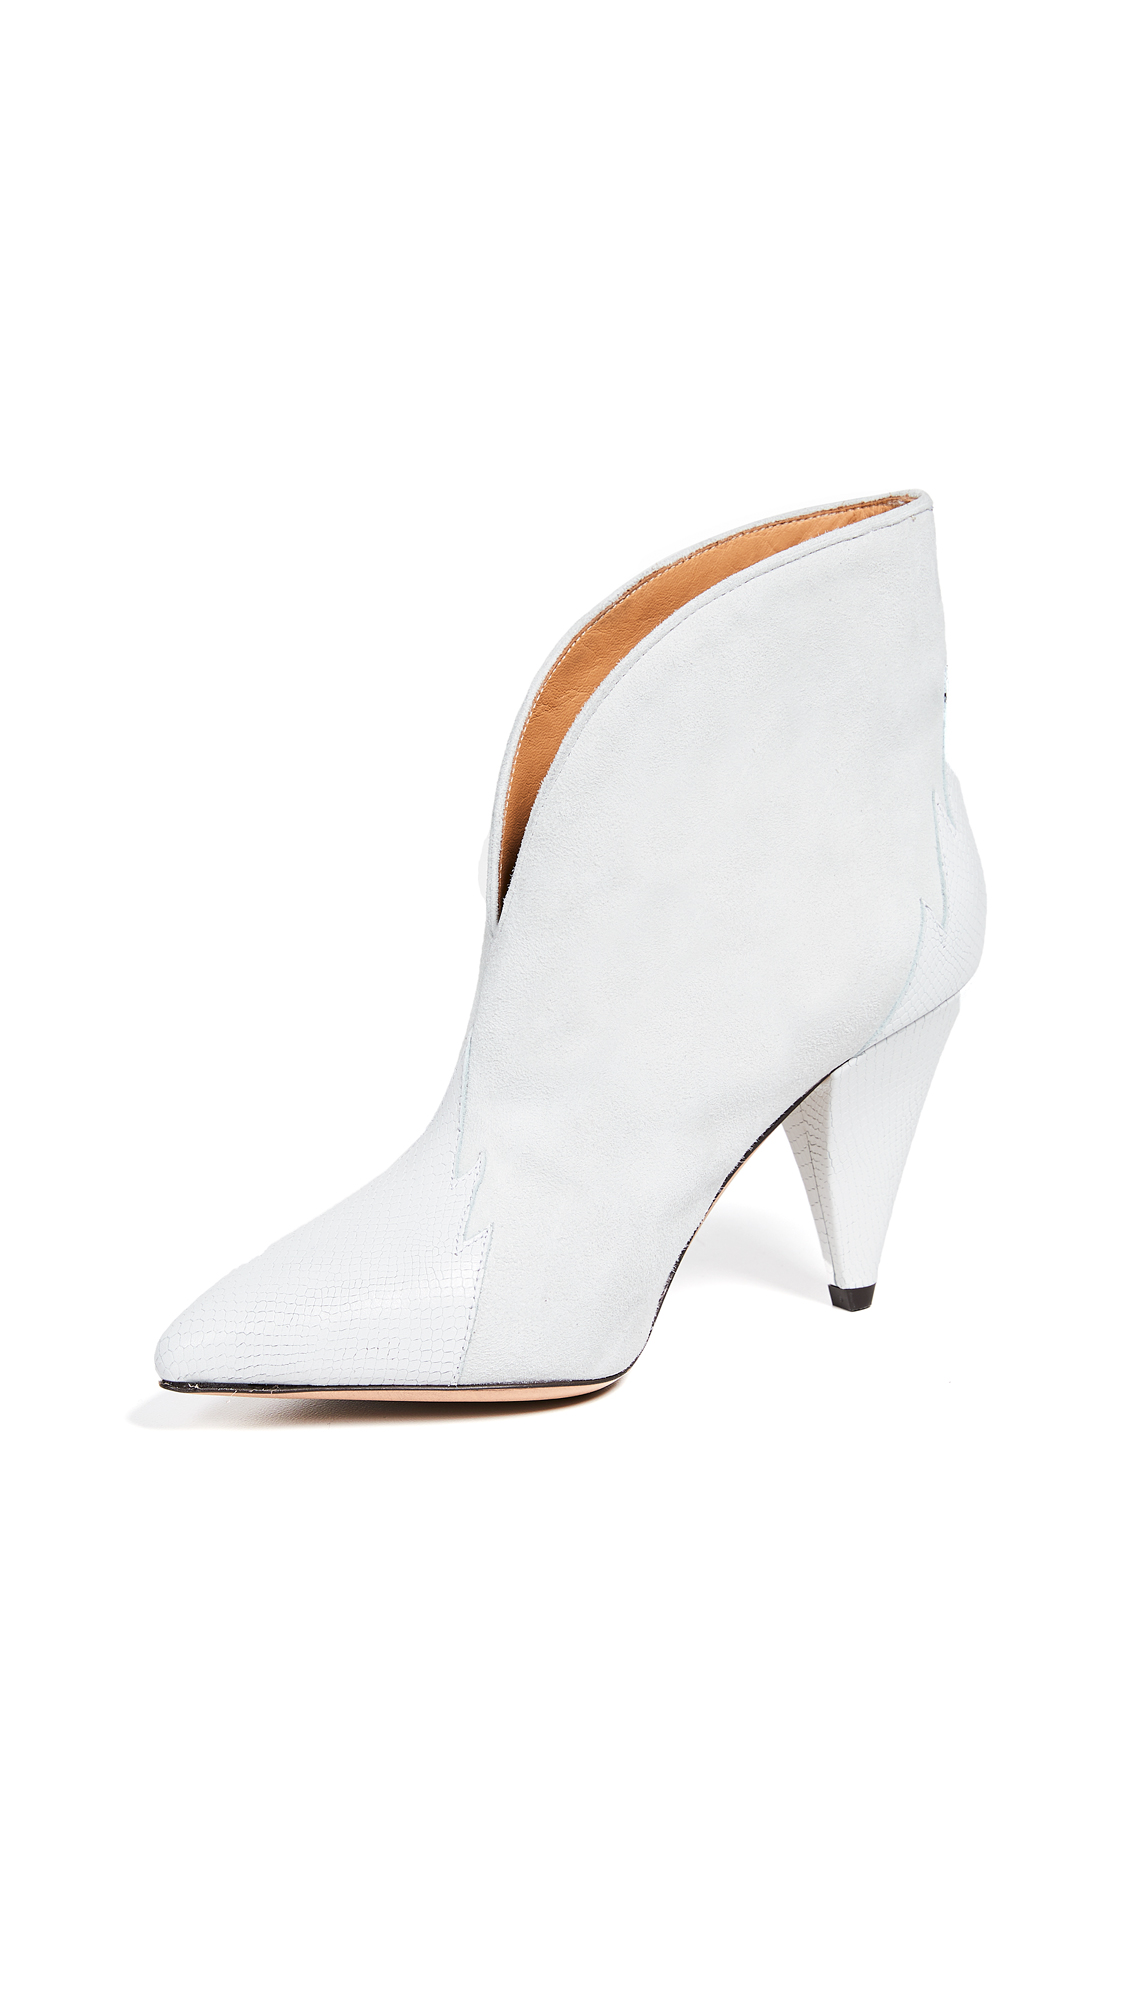 Isabel Marant Archee Suede Booties - White